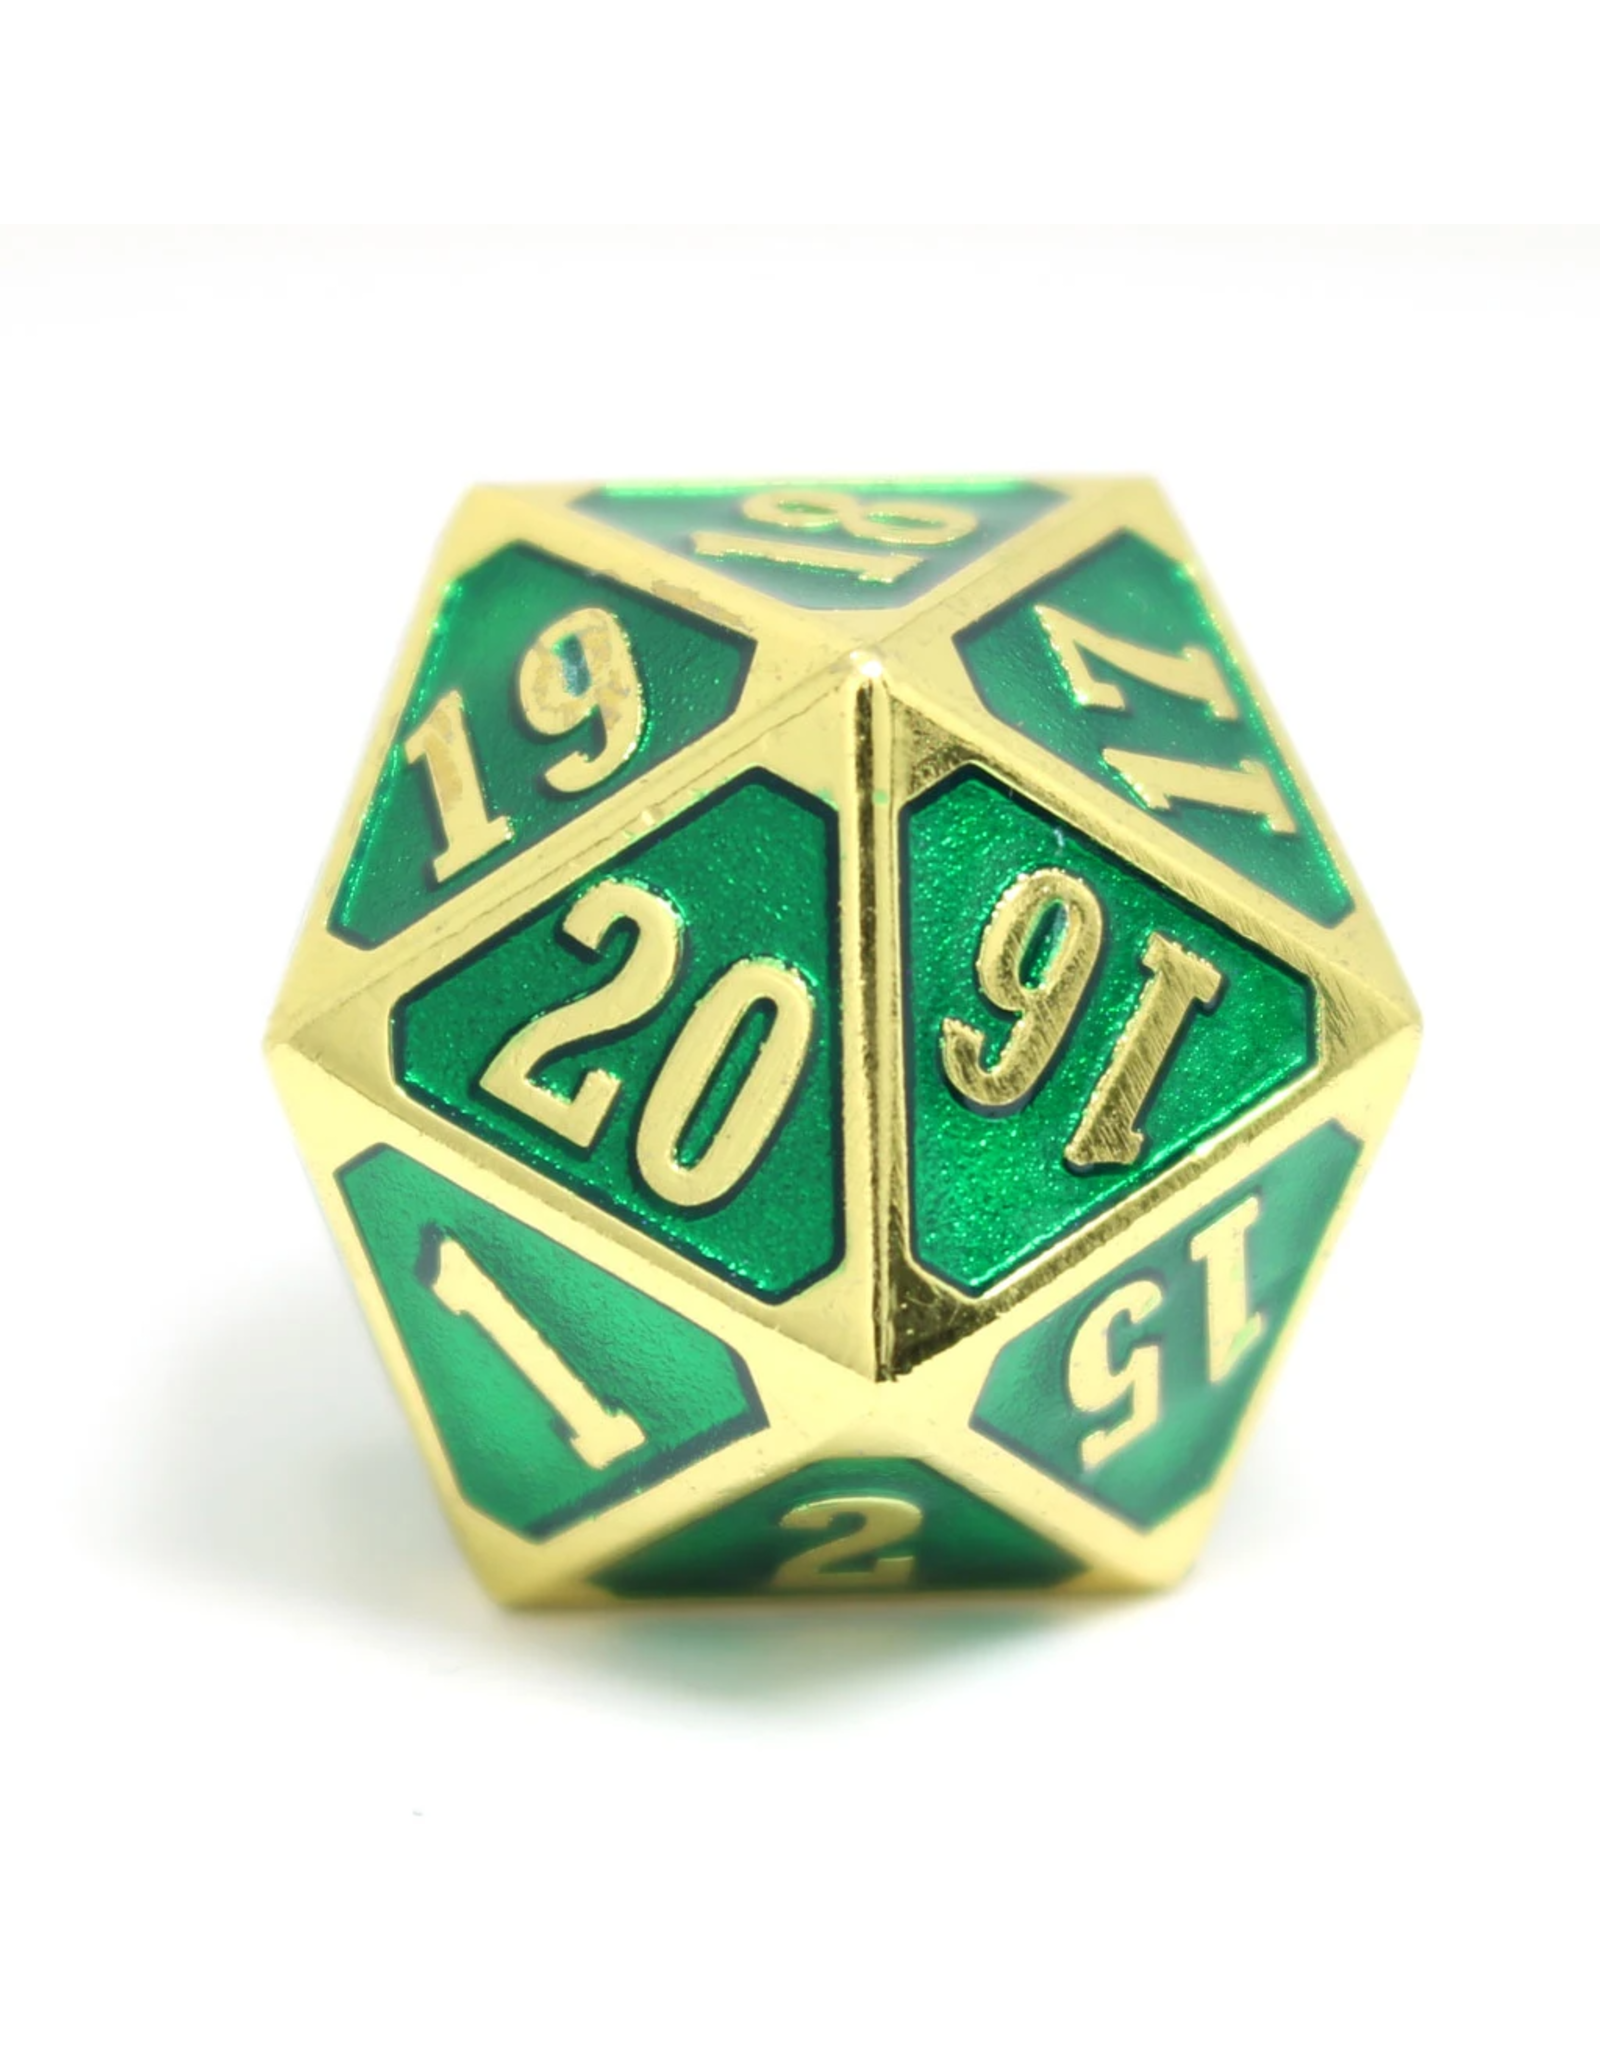 Die Hard Dice Die Hard Dice: Roll Down D20 Shiny Gold Emerald